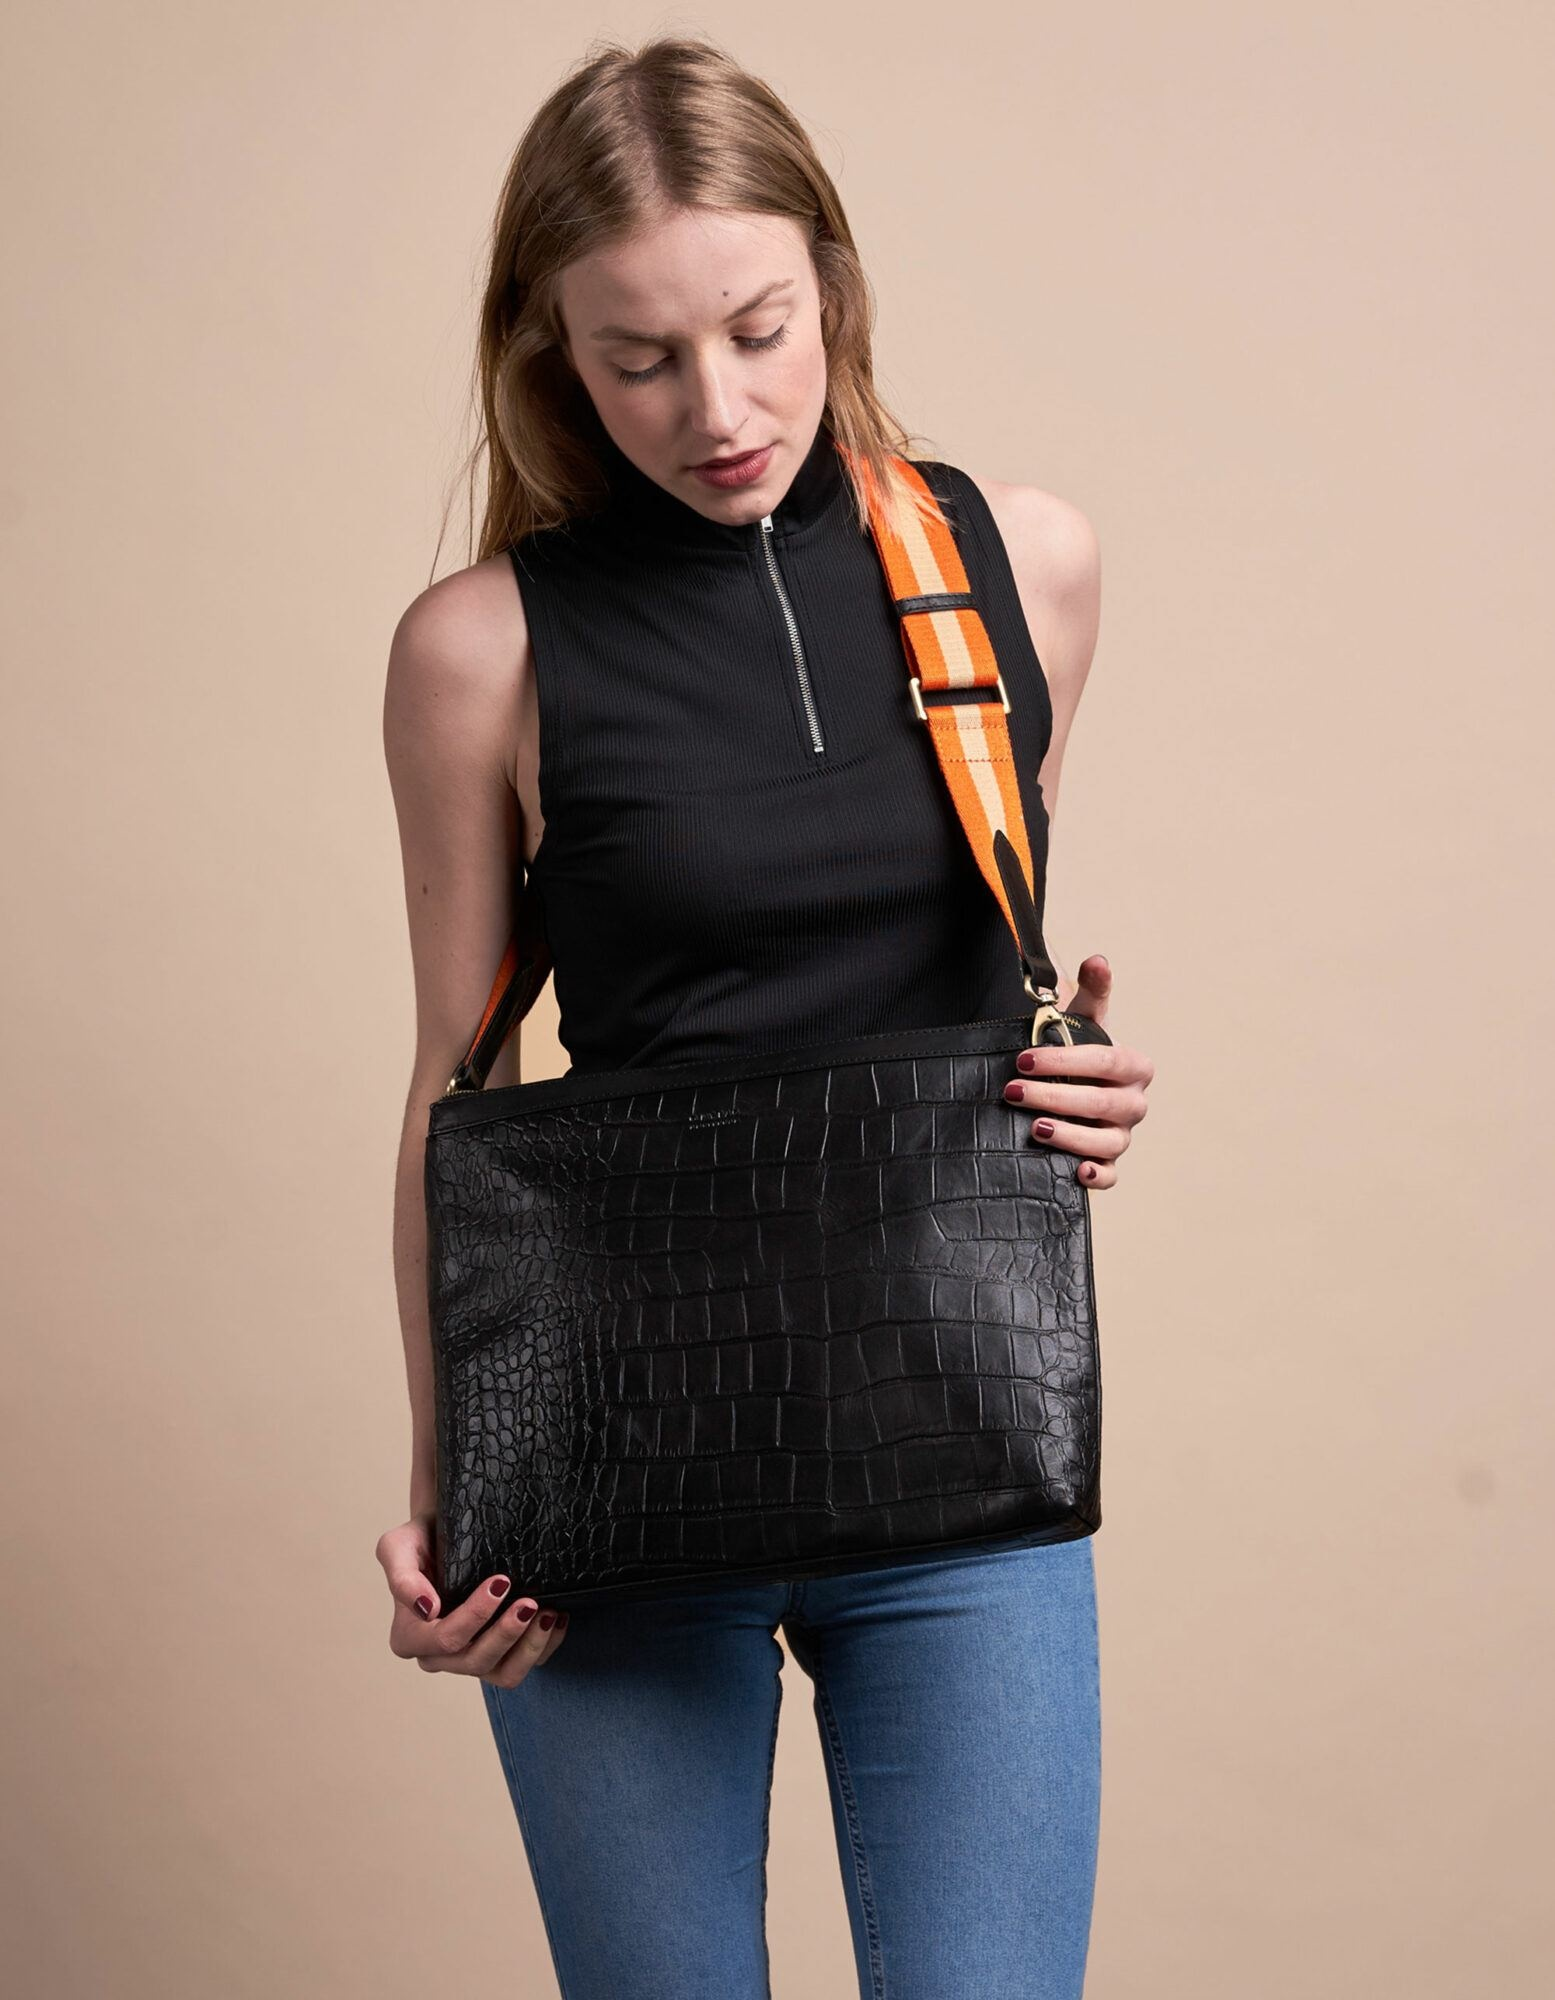 Scarlet Bag - Black Croco Classic Leather-7